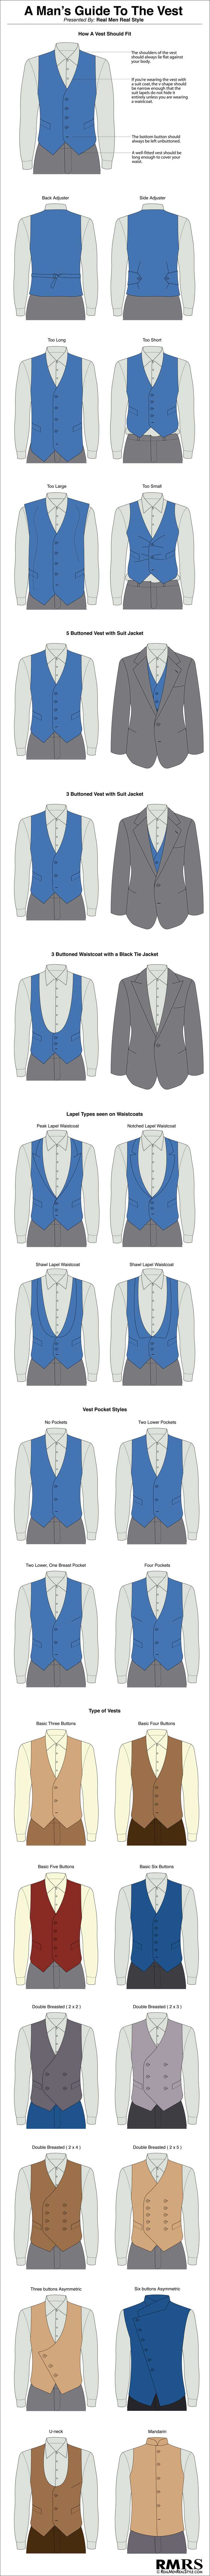 A-Mans-Guide-To-The-Vest-Infographic-700 (1)